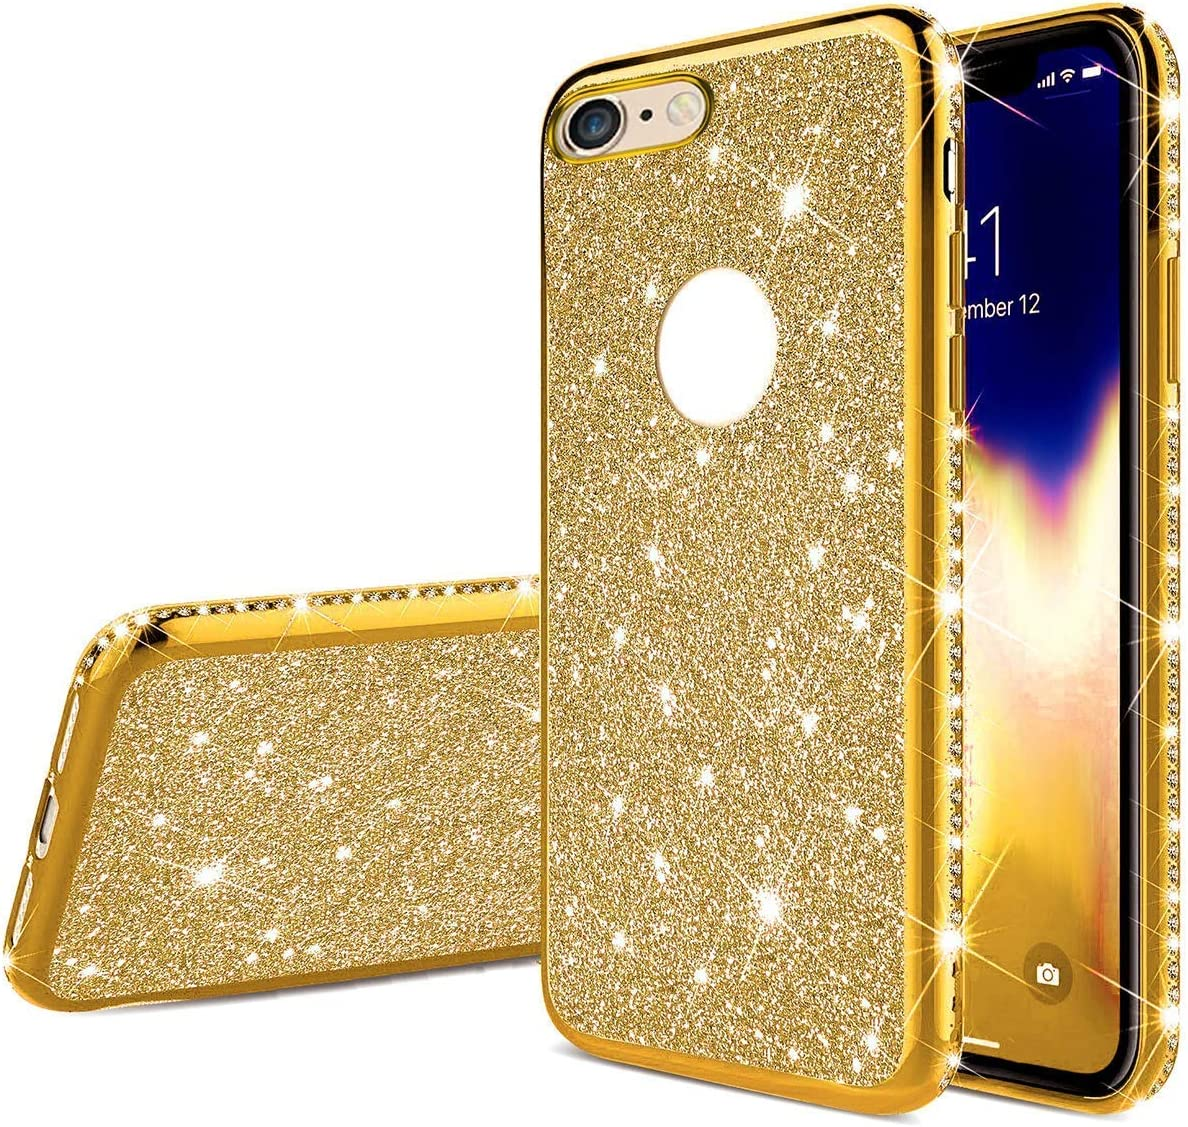 Herbests Compatible with iPhone 8 Plus//iPhone 7 Plus Case for Girls Glitter Diamond Rhinestone Luxury Sparkly Bling Electroplating Soft Clear Ultra-Thin Silicone Gel Rubber Back Cover,Black